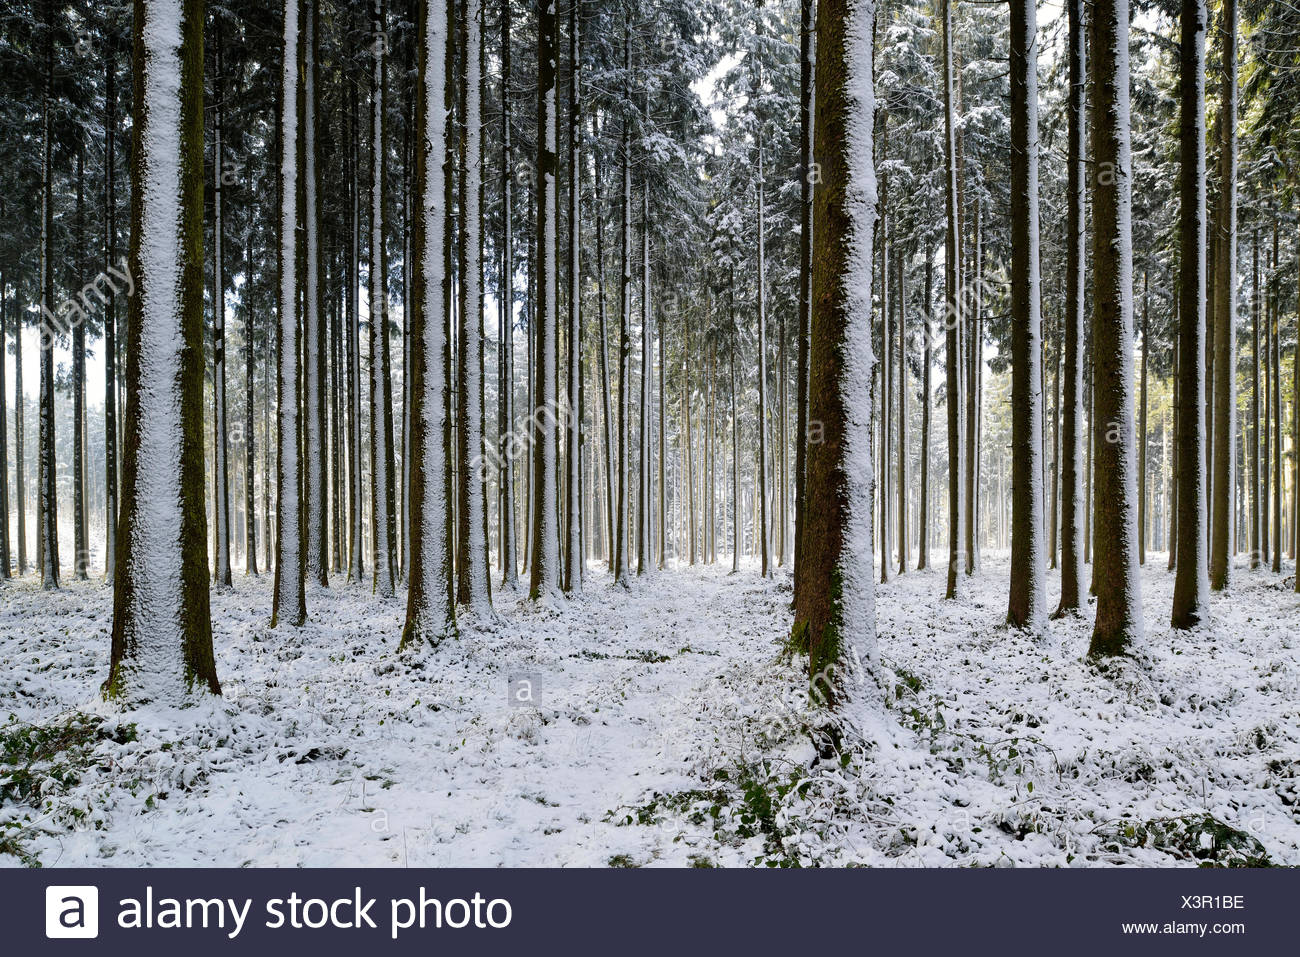 Snow-covered coniferous forest with freshly fallen snow, Horben, Canton of Aargau, Switzerland - Stock Image